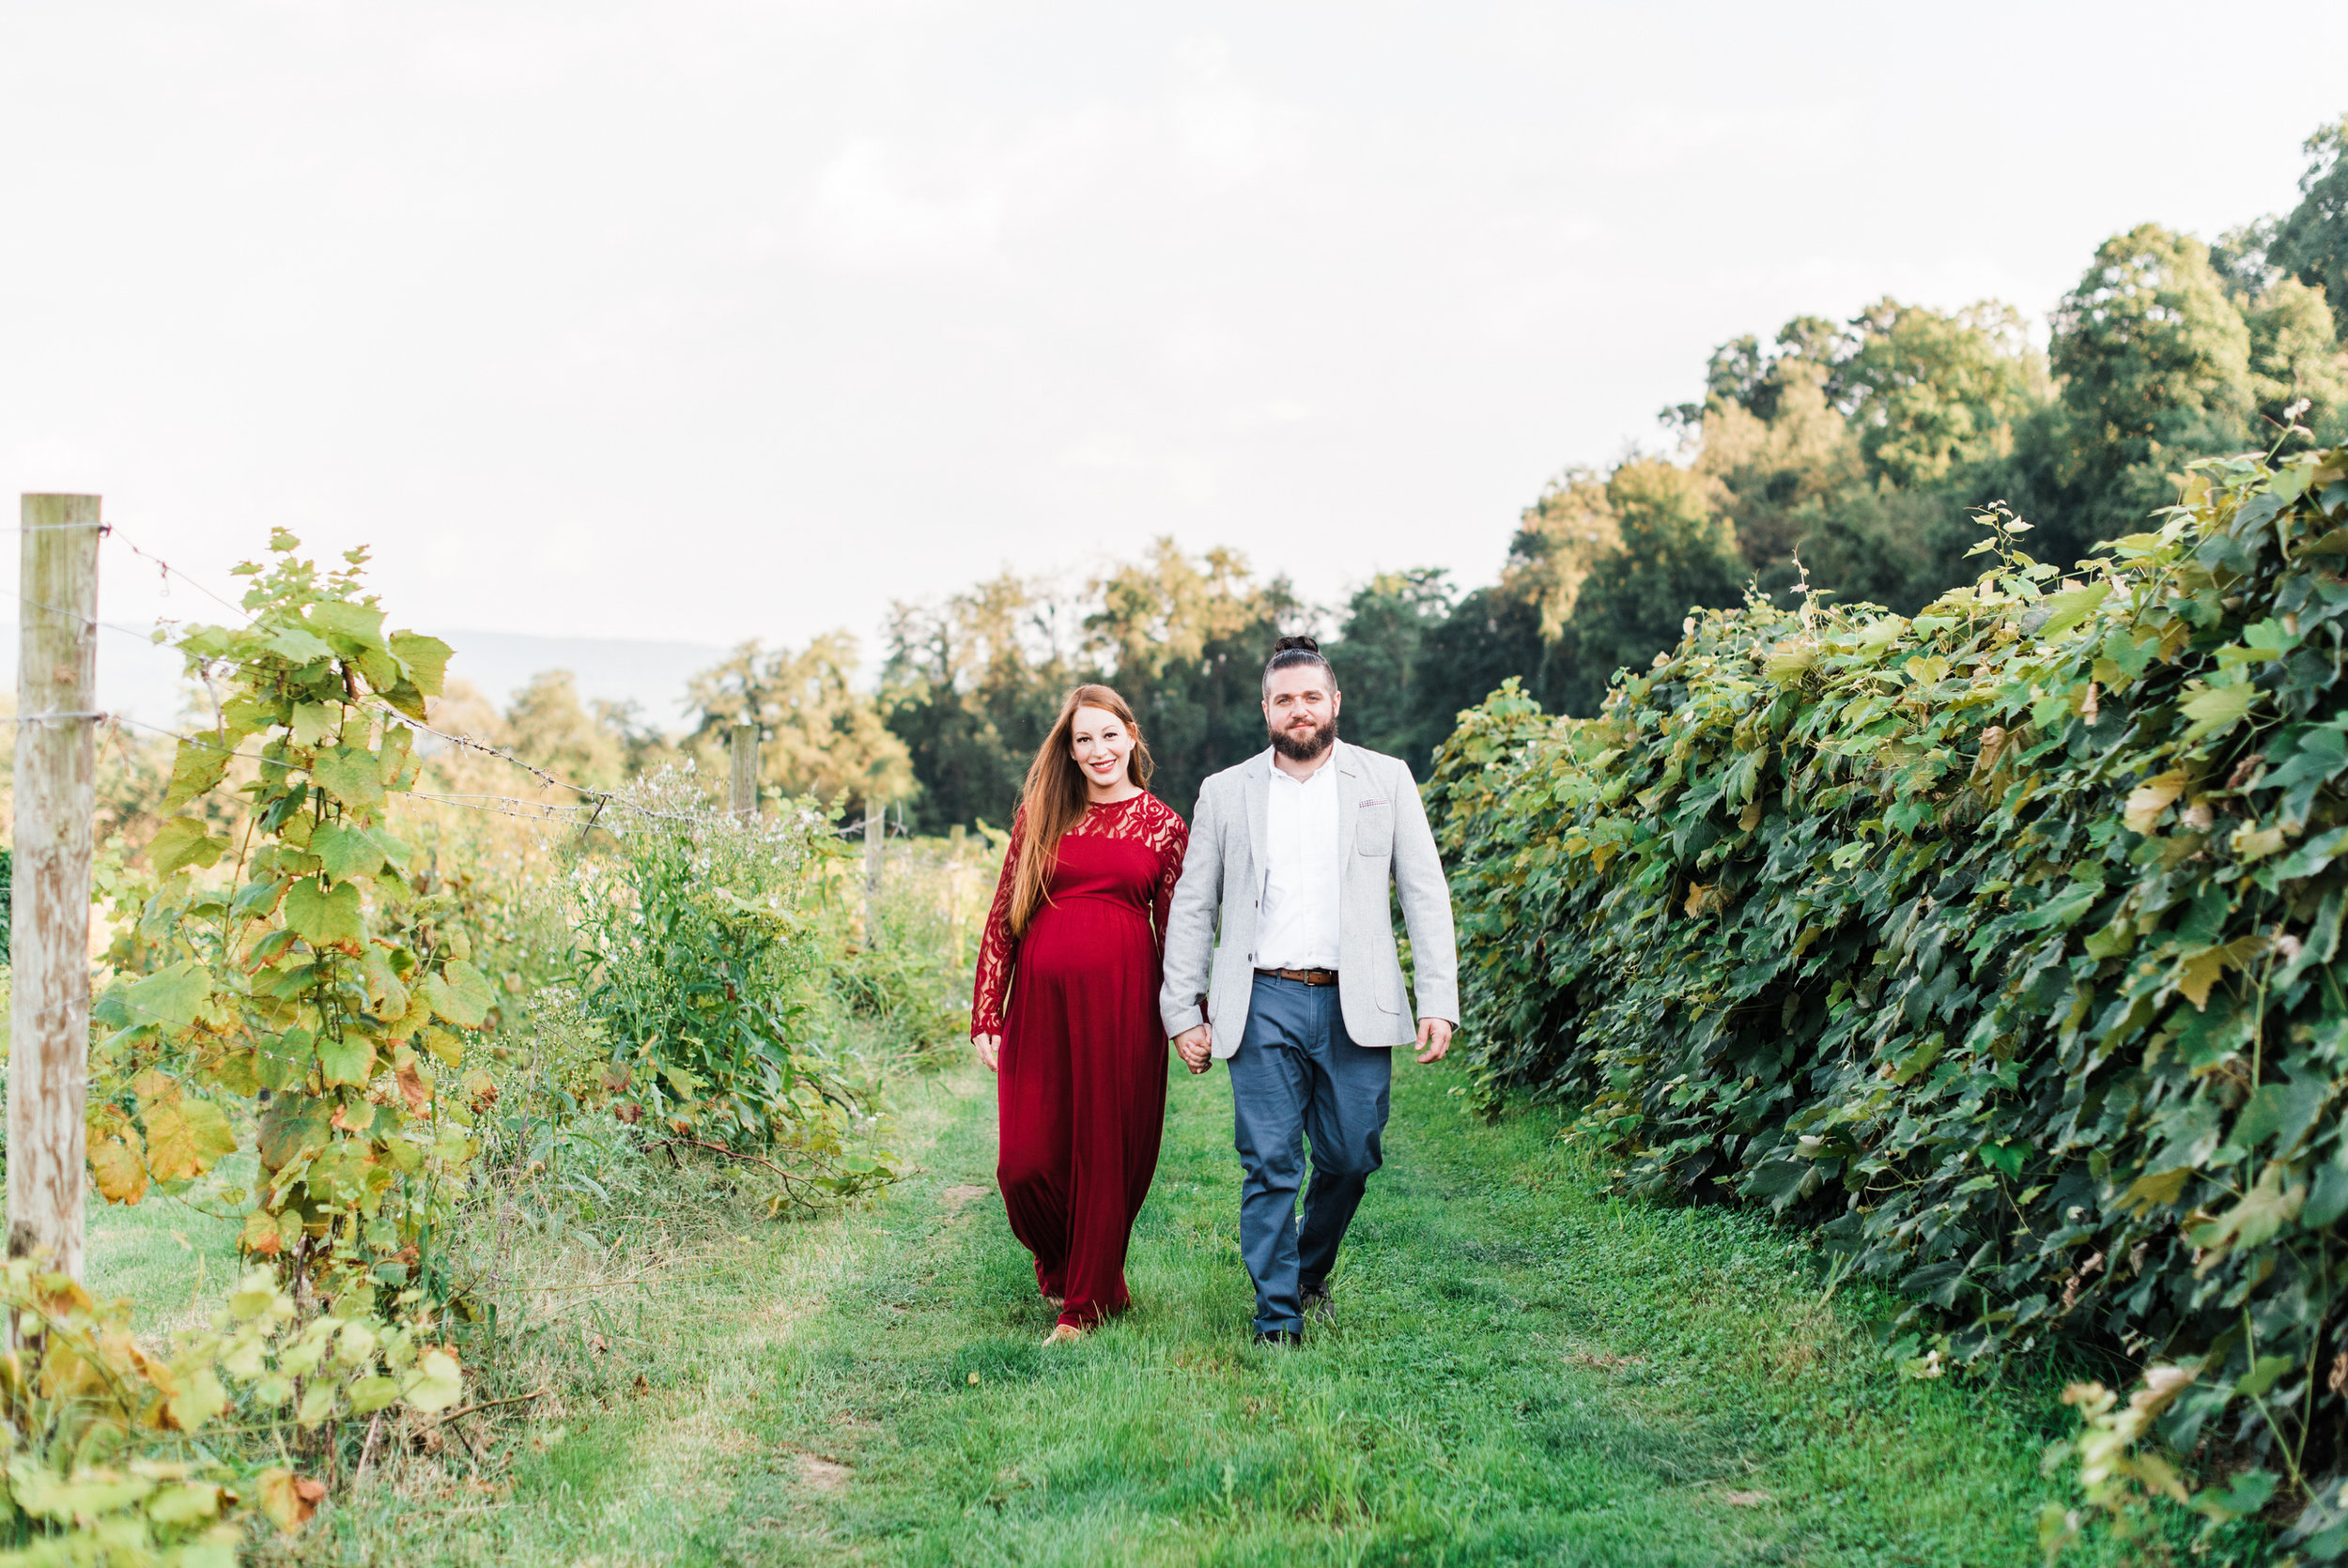 pittsburgh-maternity-photographers-winery-apple-orchard-session_20.jpg